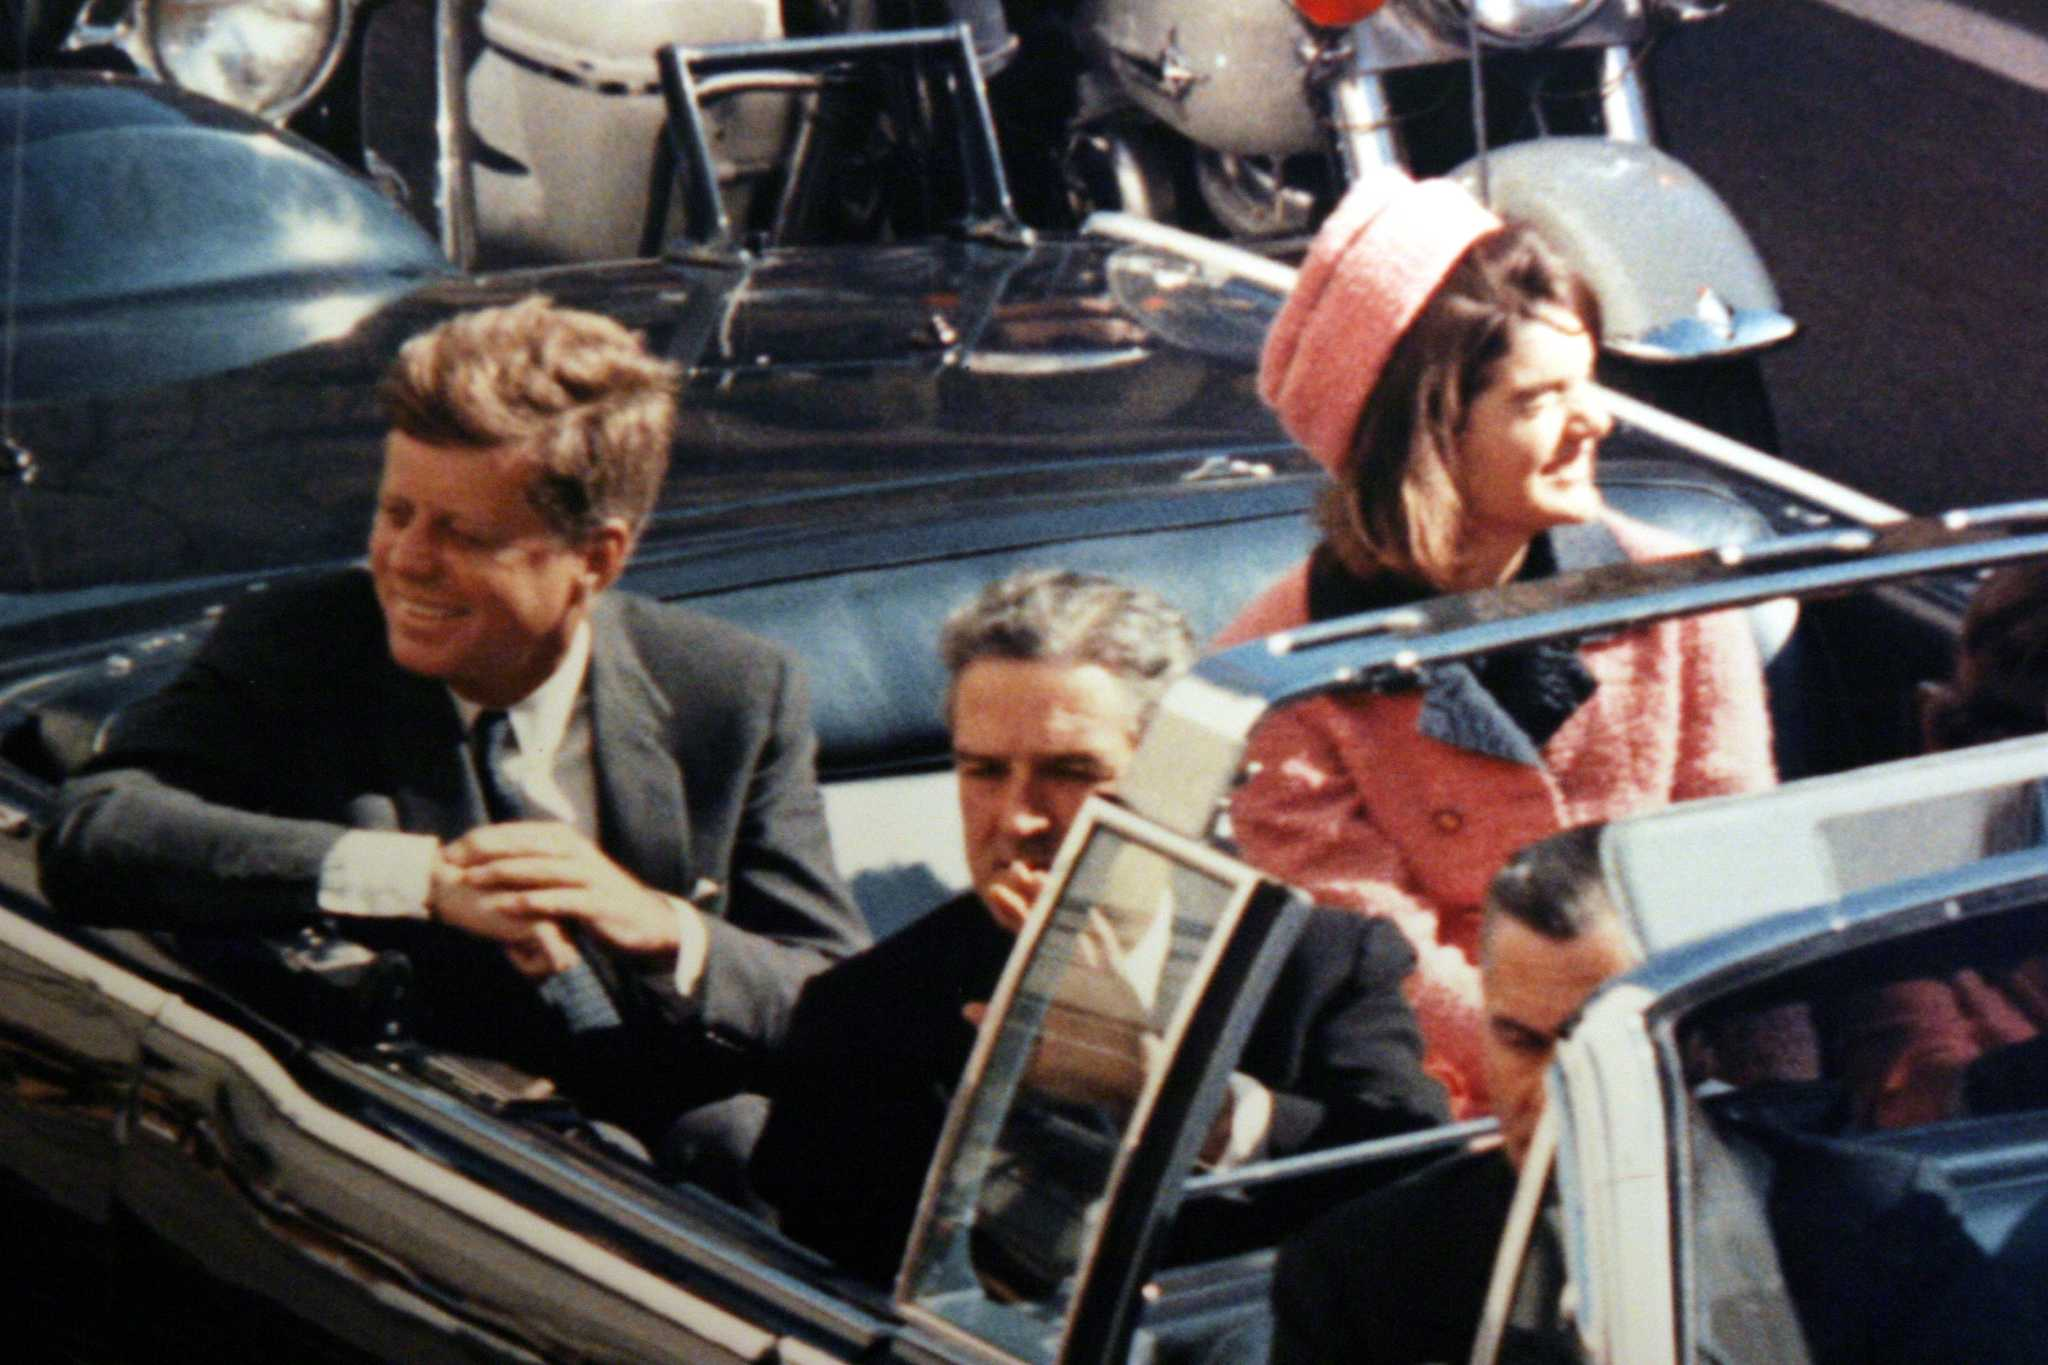 JFK motorcade members What happened after the assassination